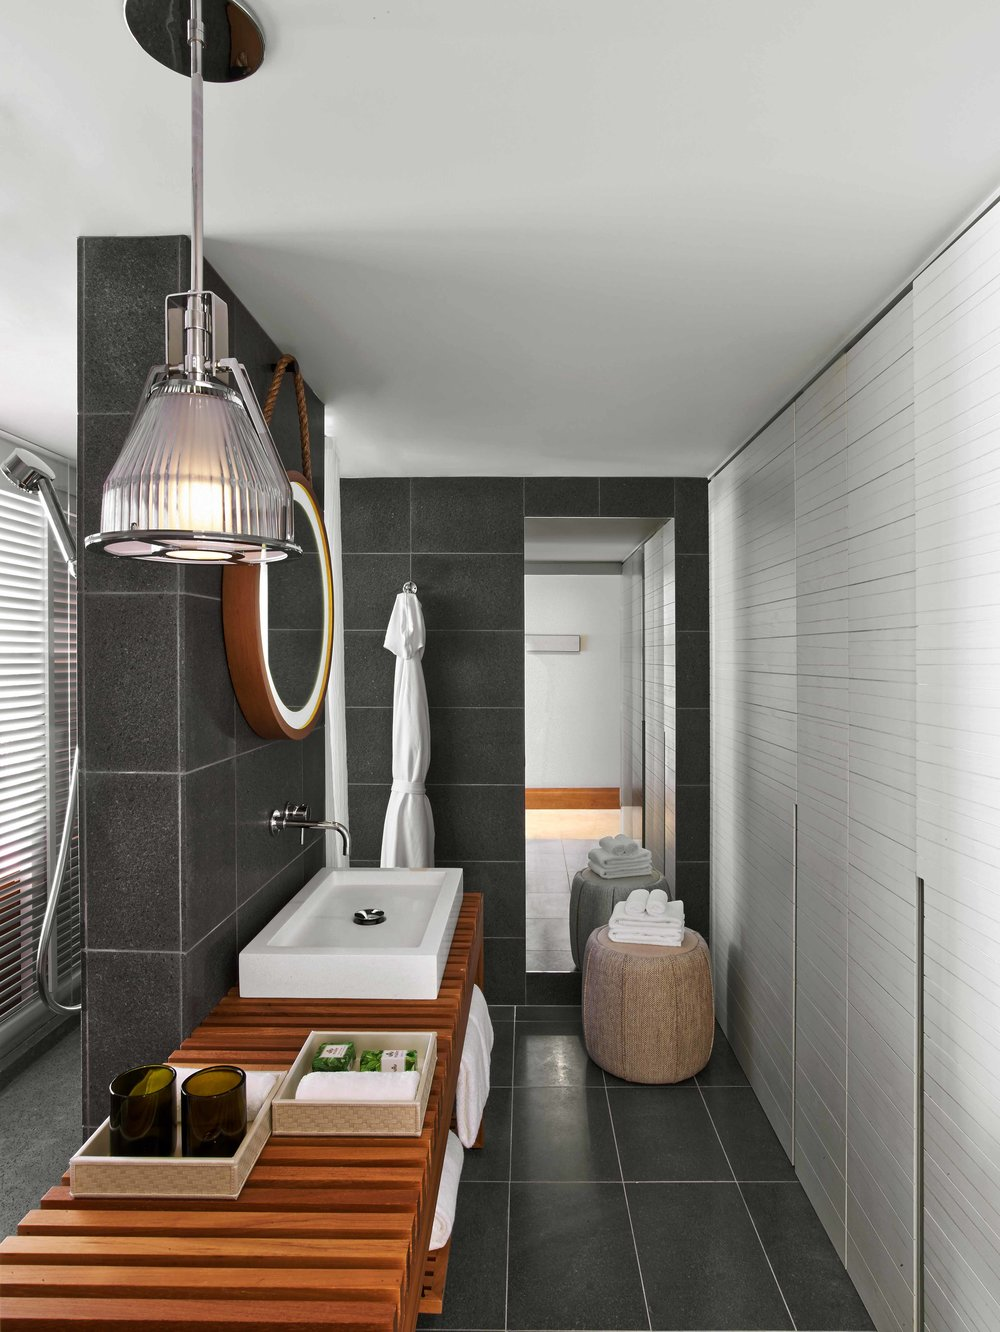 Andaz Guest Room Bathroom.jpg